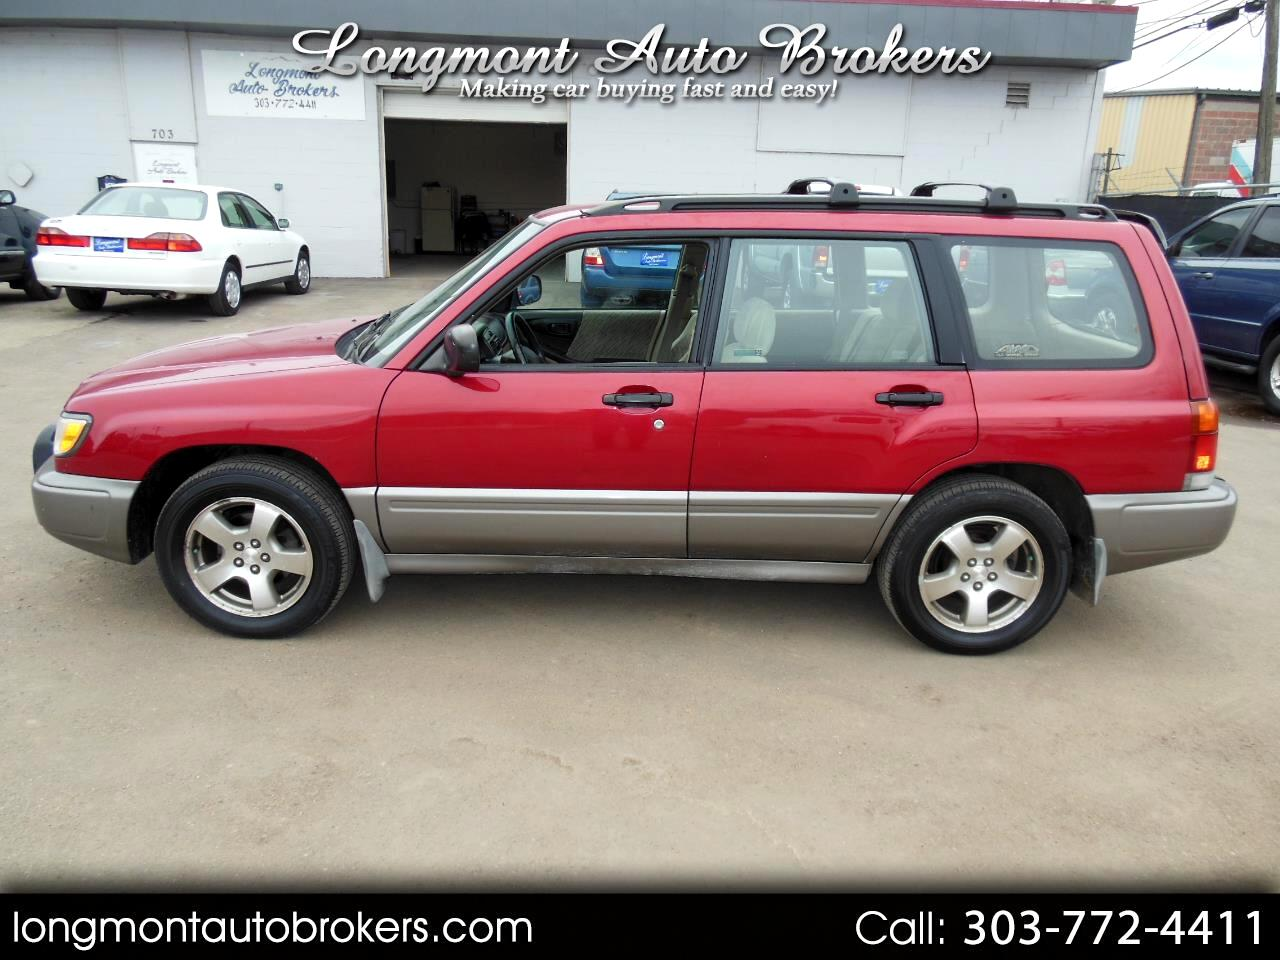 1999 Subaru Forester 4dr S Auto QU All Weather Pkg AWD